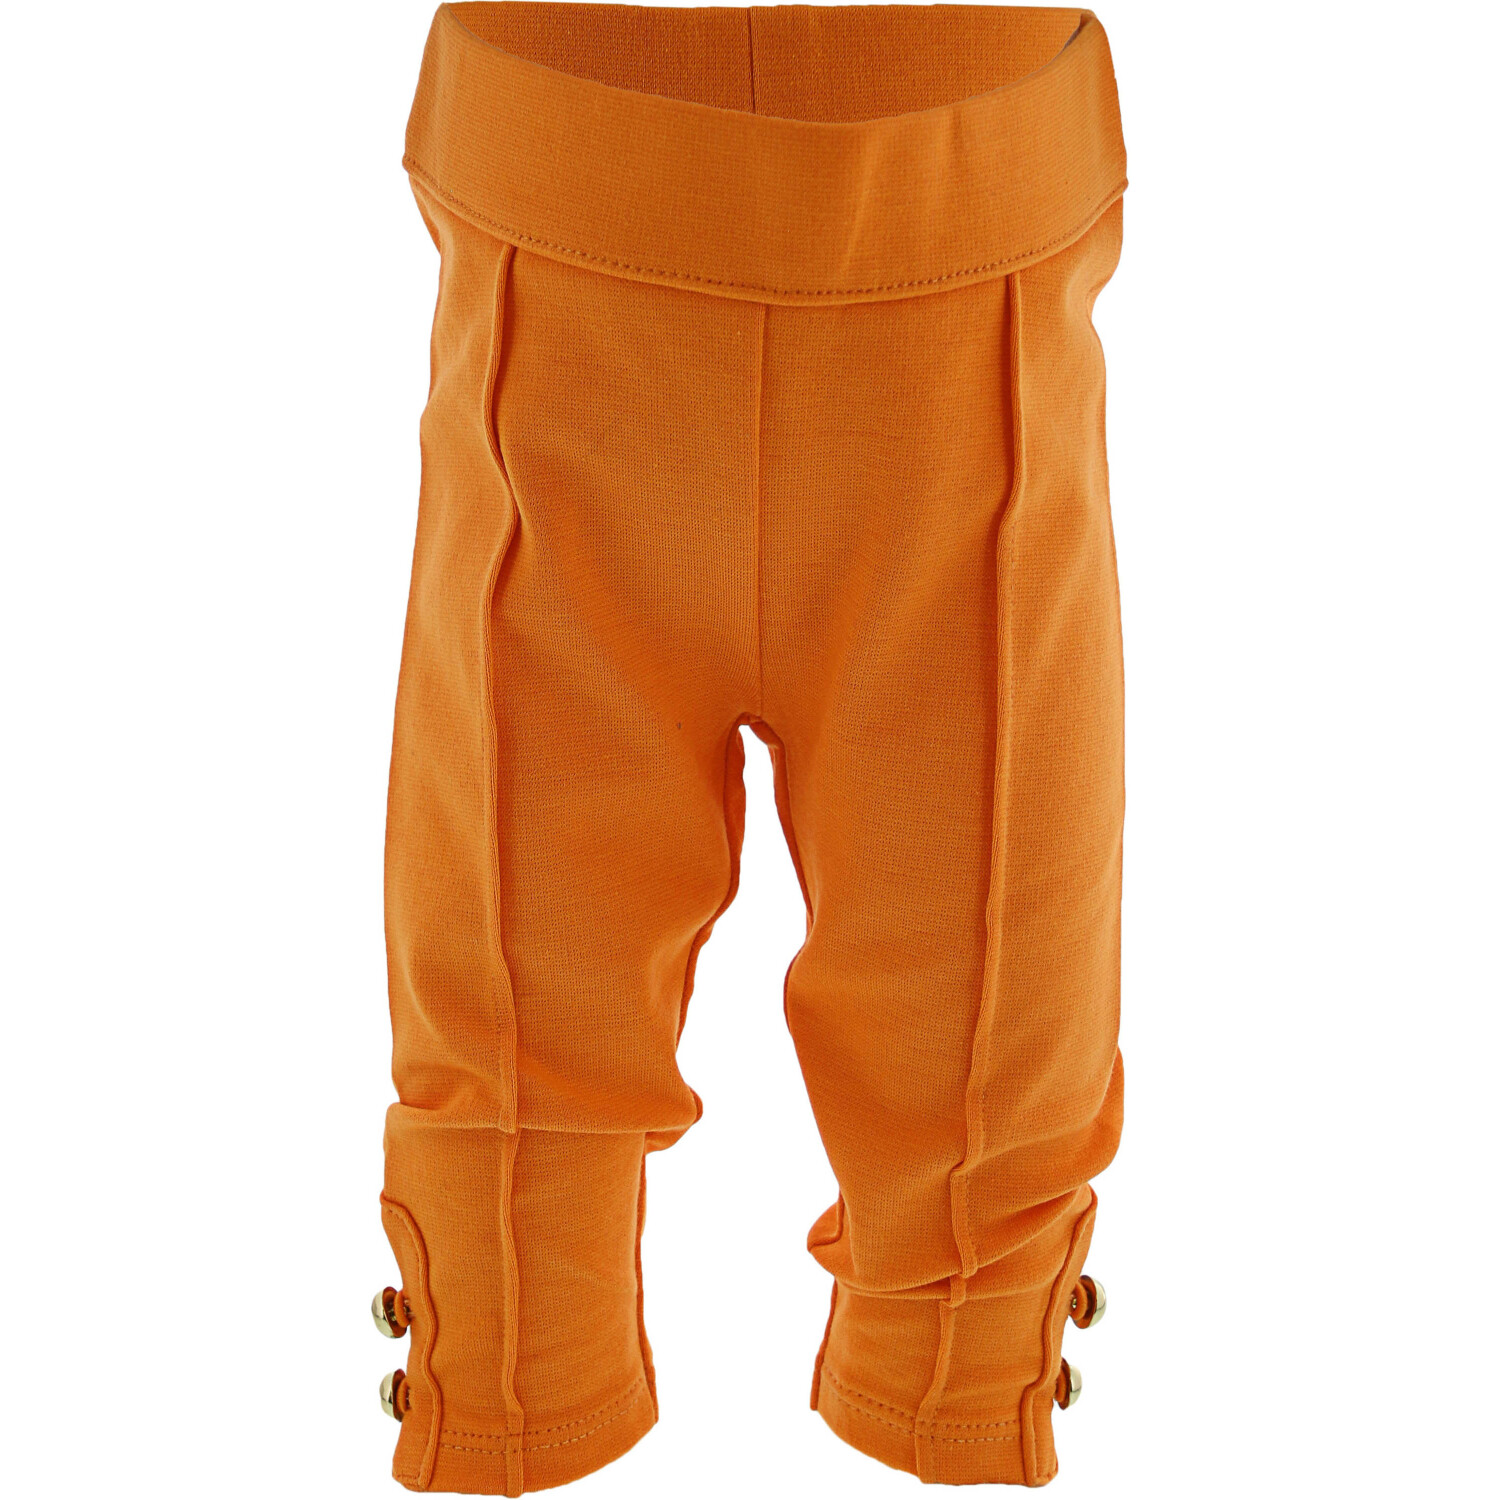 Janie And Jack Girl's Orange Button Cuff Ponte Pant Pants - 3-6 Months